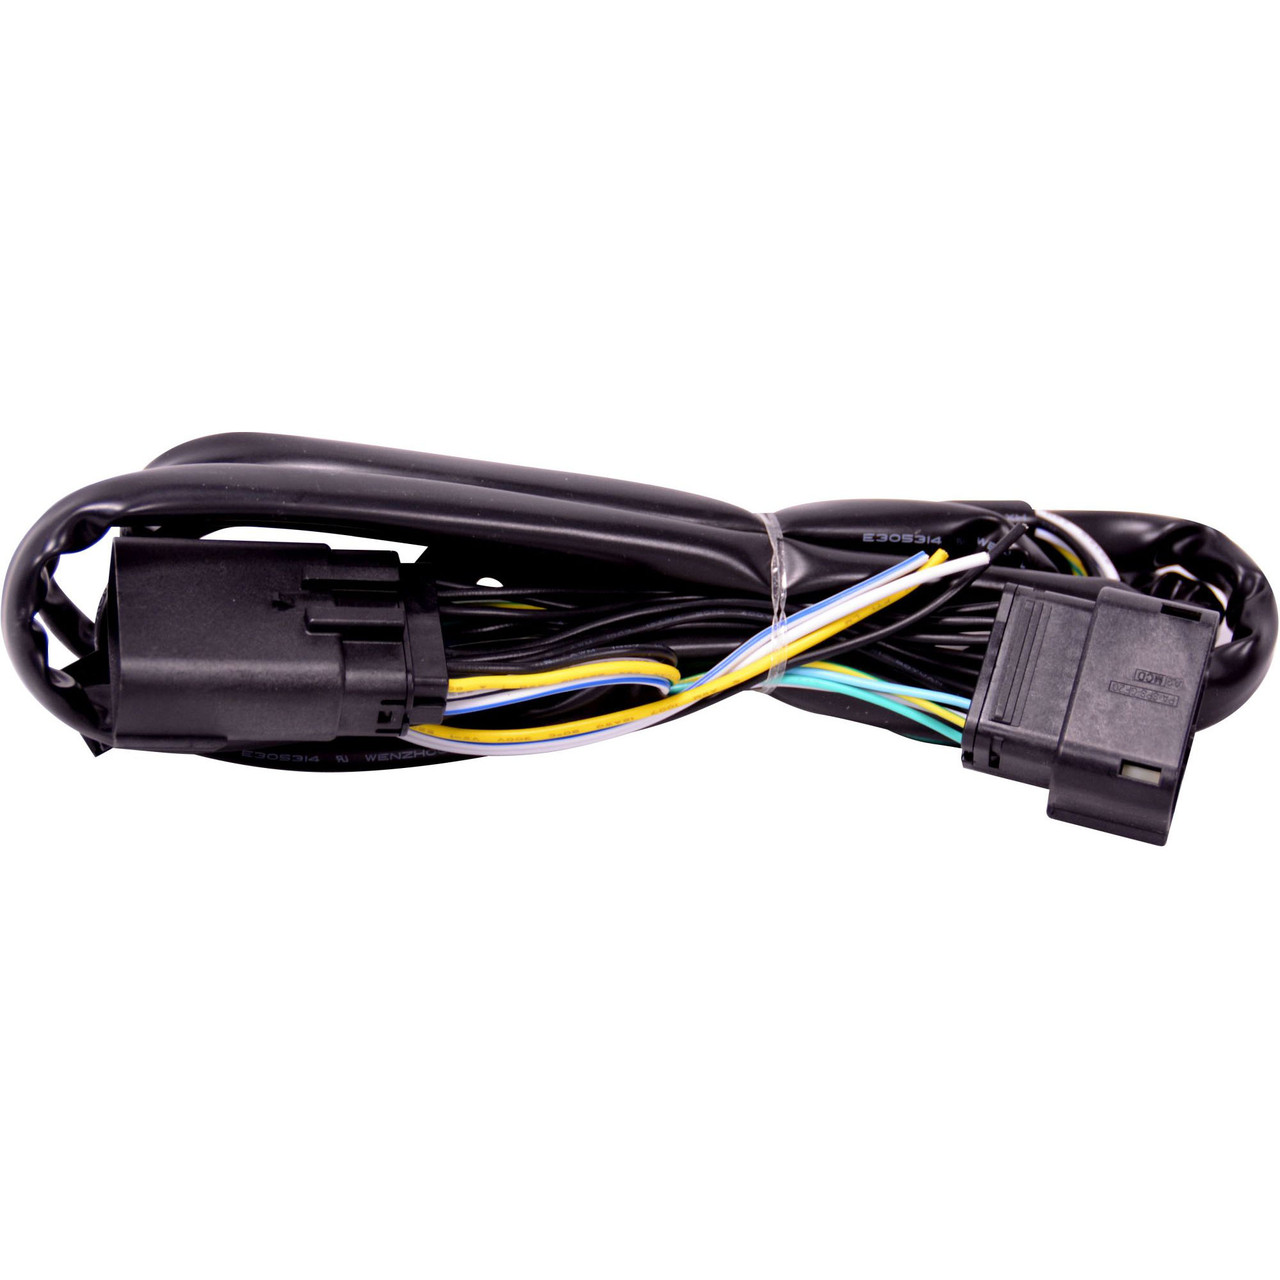 hight resolution of arc audio hd rsh rear speaker amplifier interface t harness for 2015 and newer harley davidson touring motorcycles creative audio